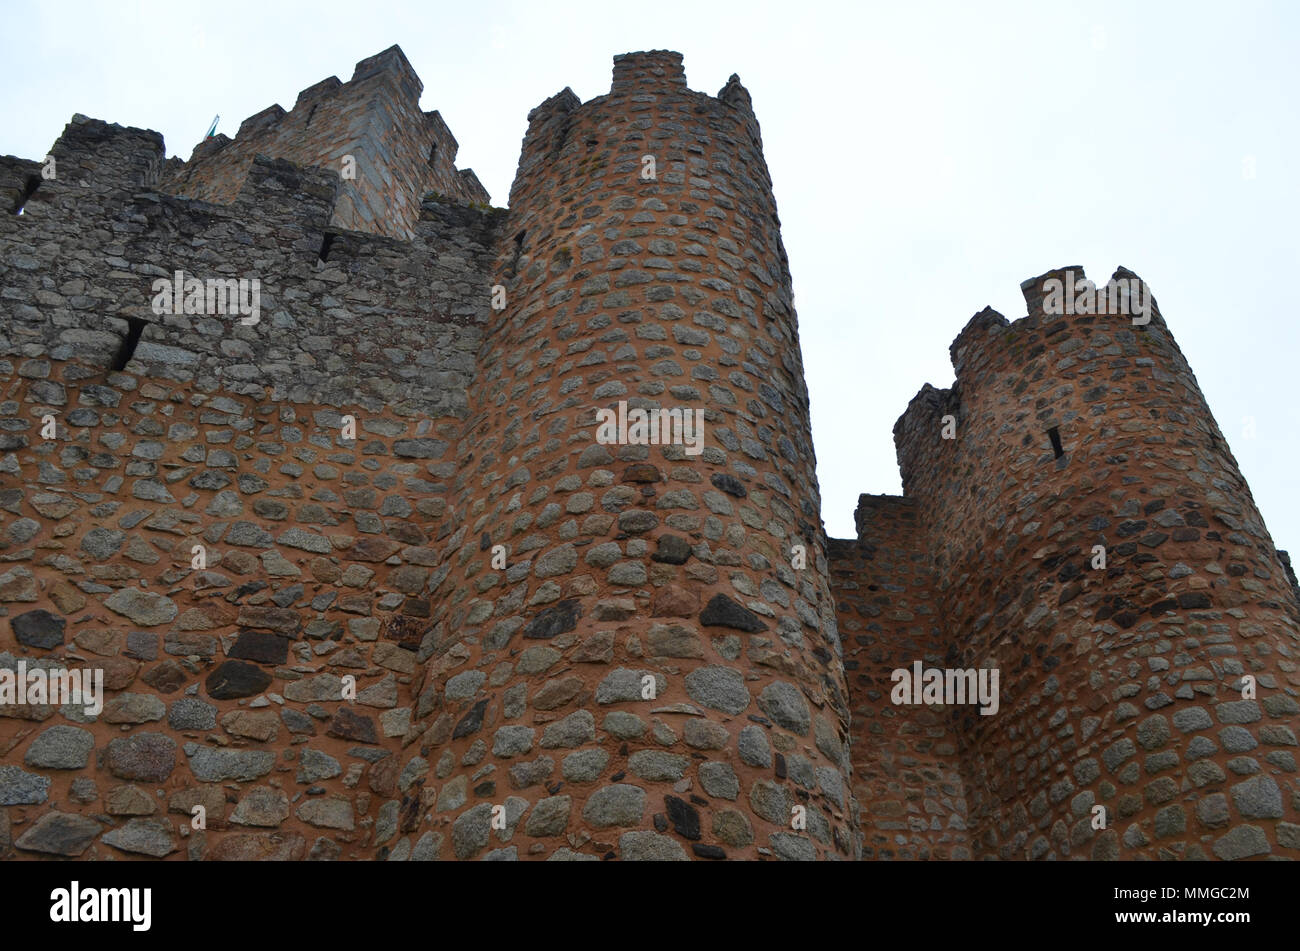 Almourol Templar castle, located in an islet in the Tagus tiver, central Portugal - Stock Image